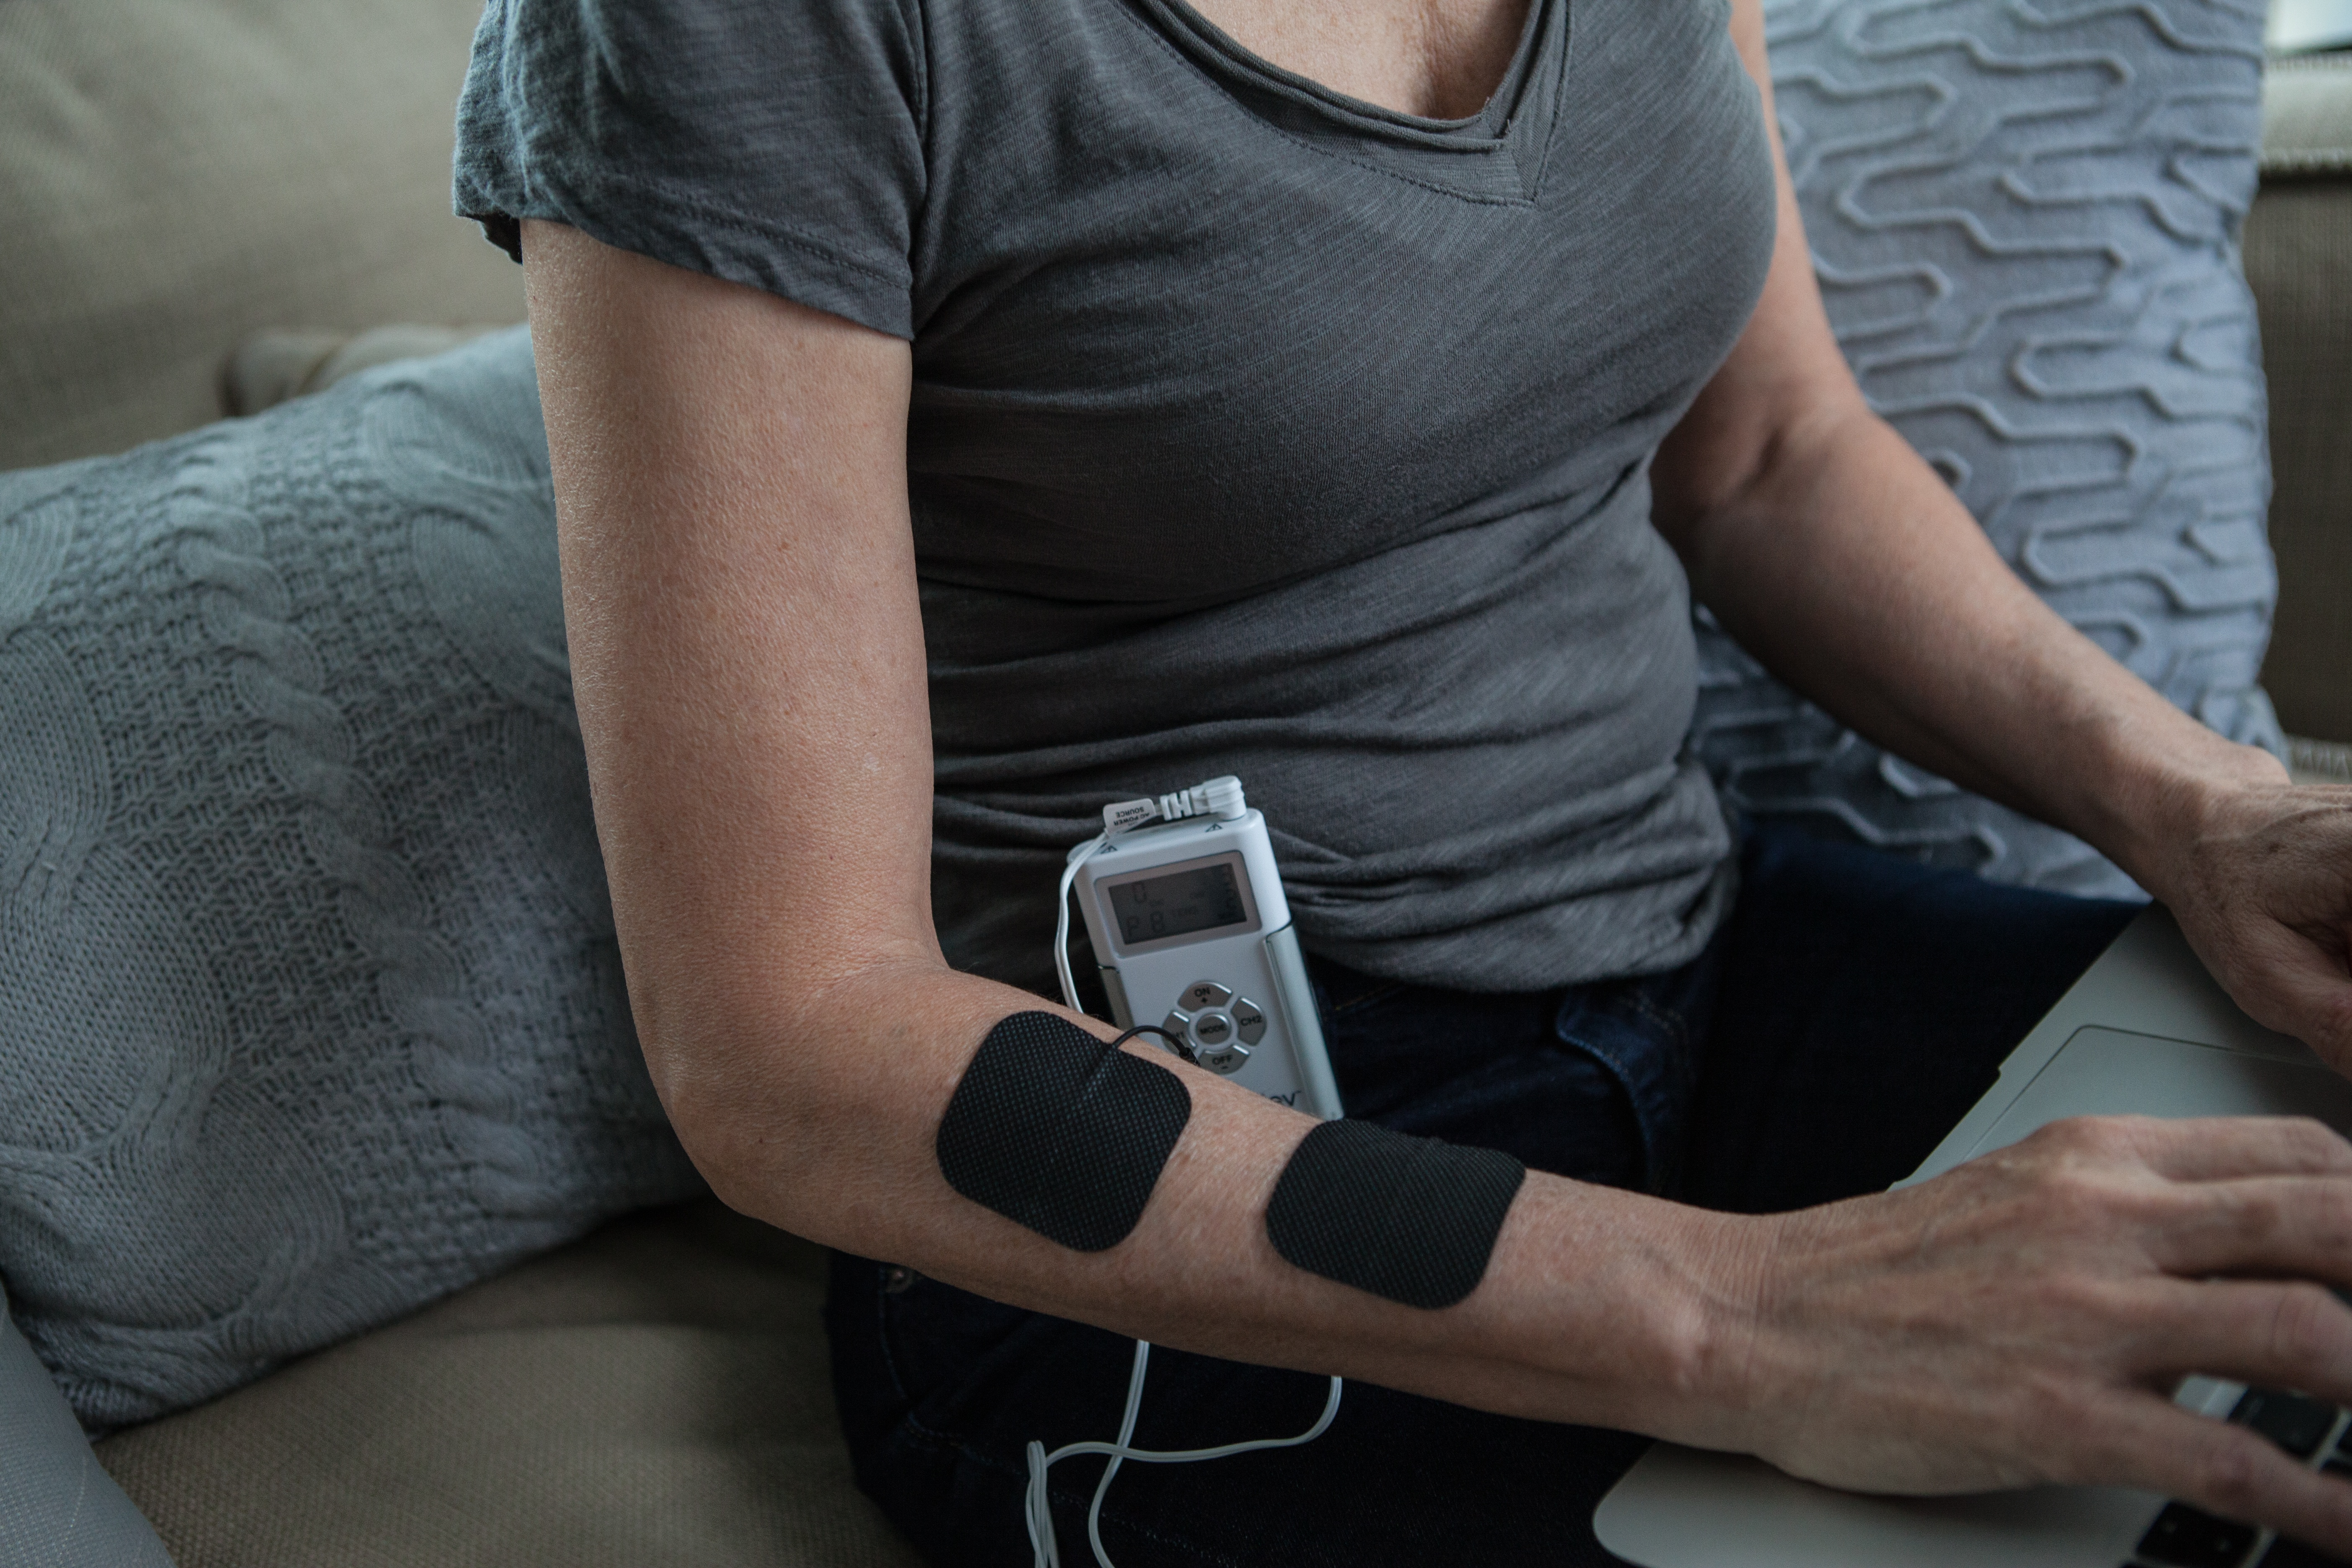 Does TENS therapy help with Carpal Tunnel?